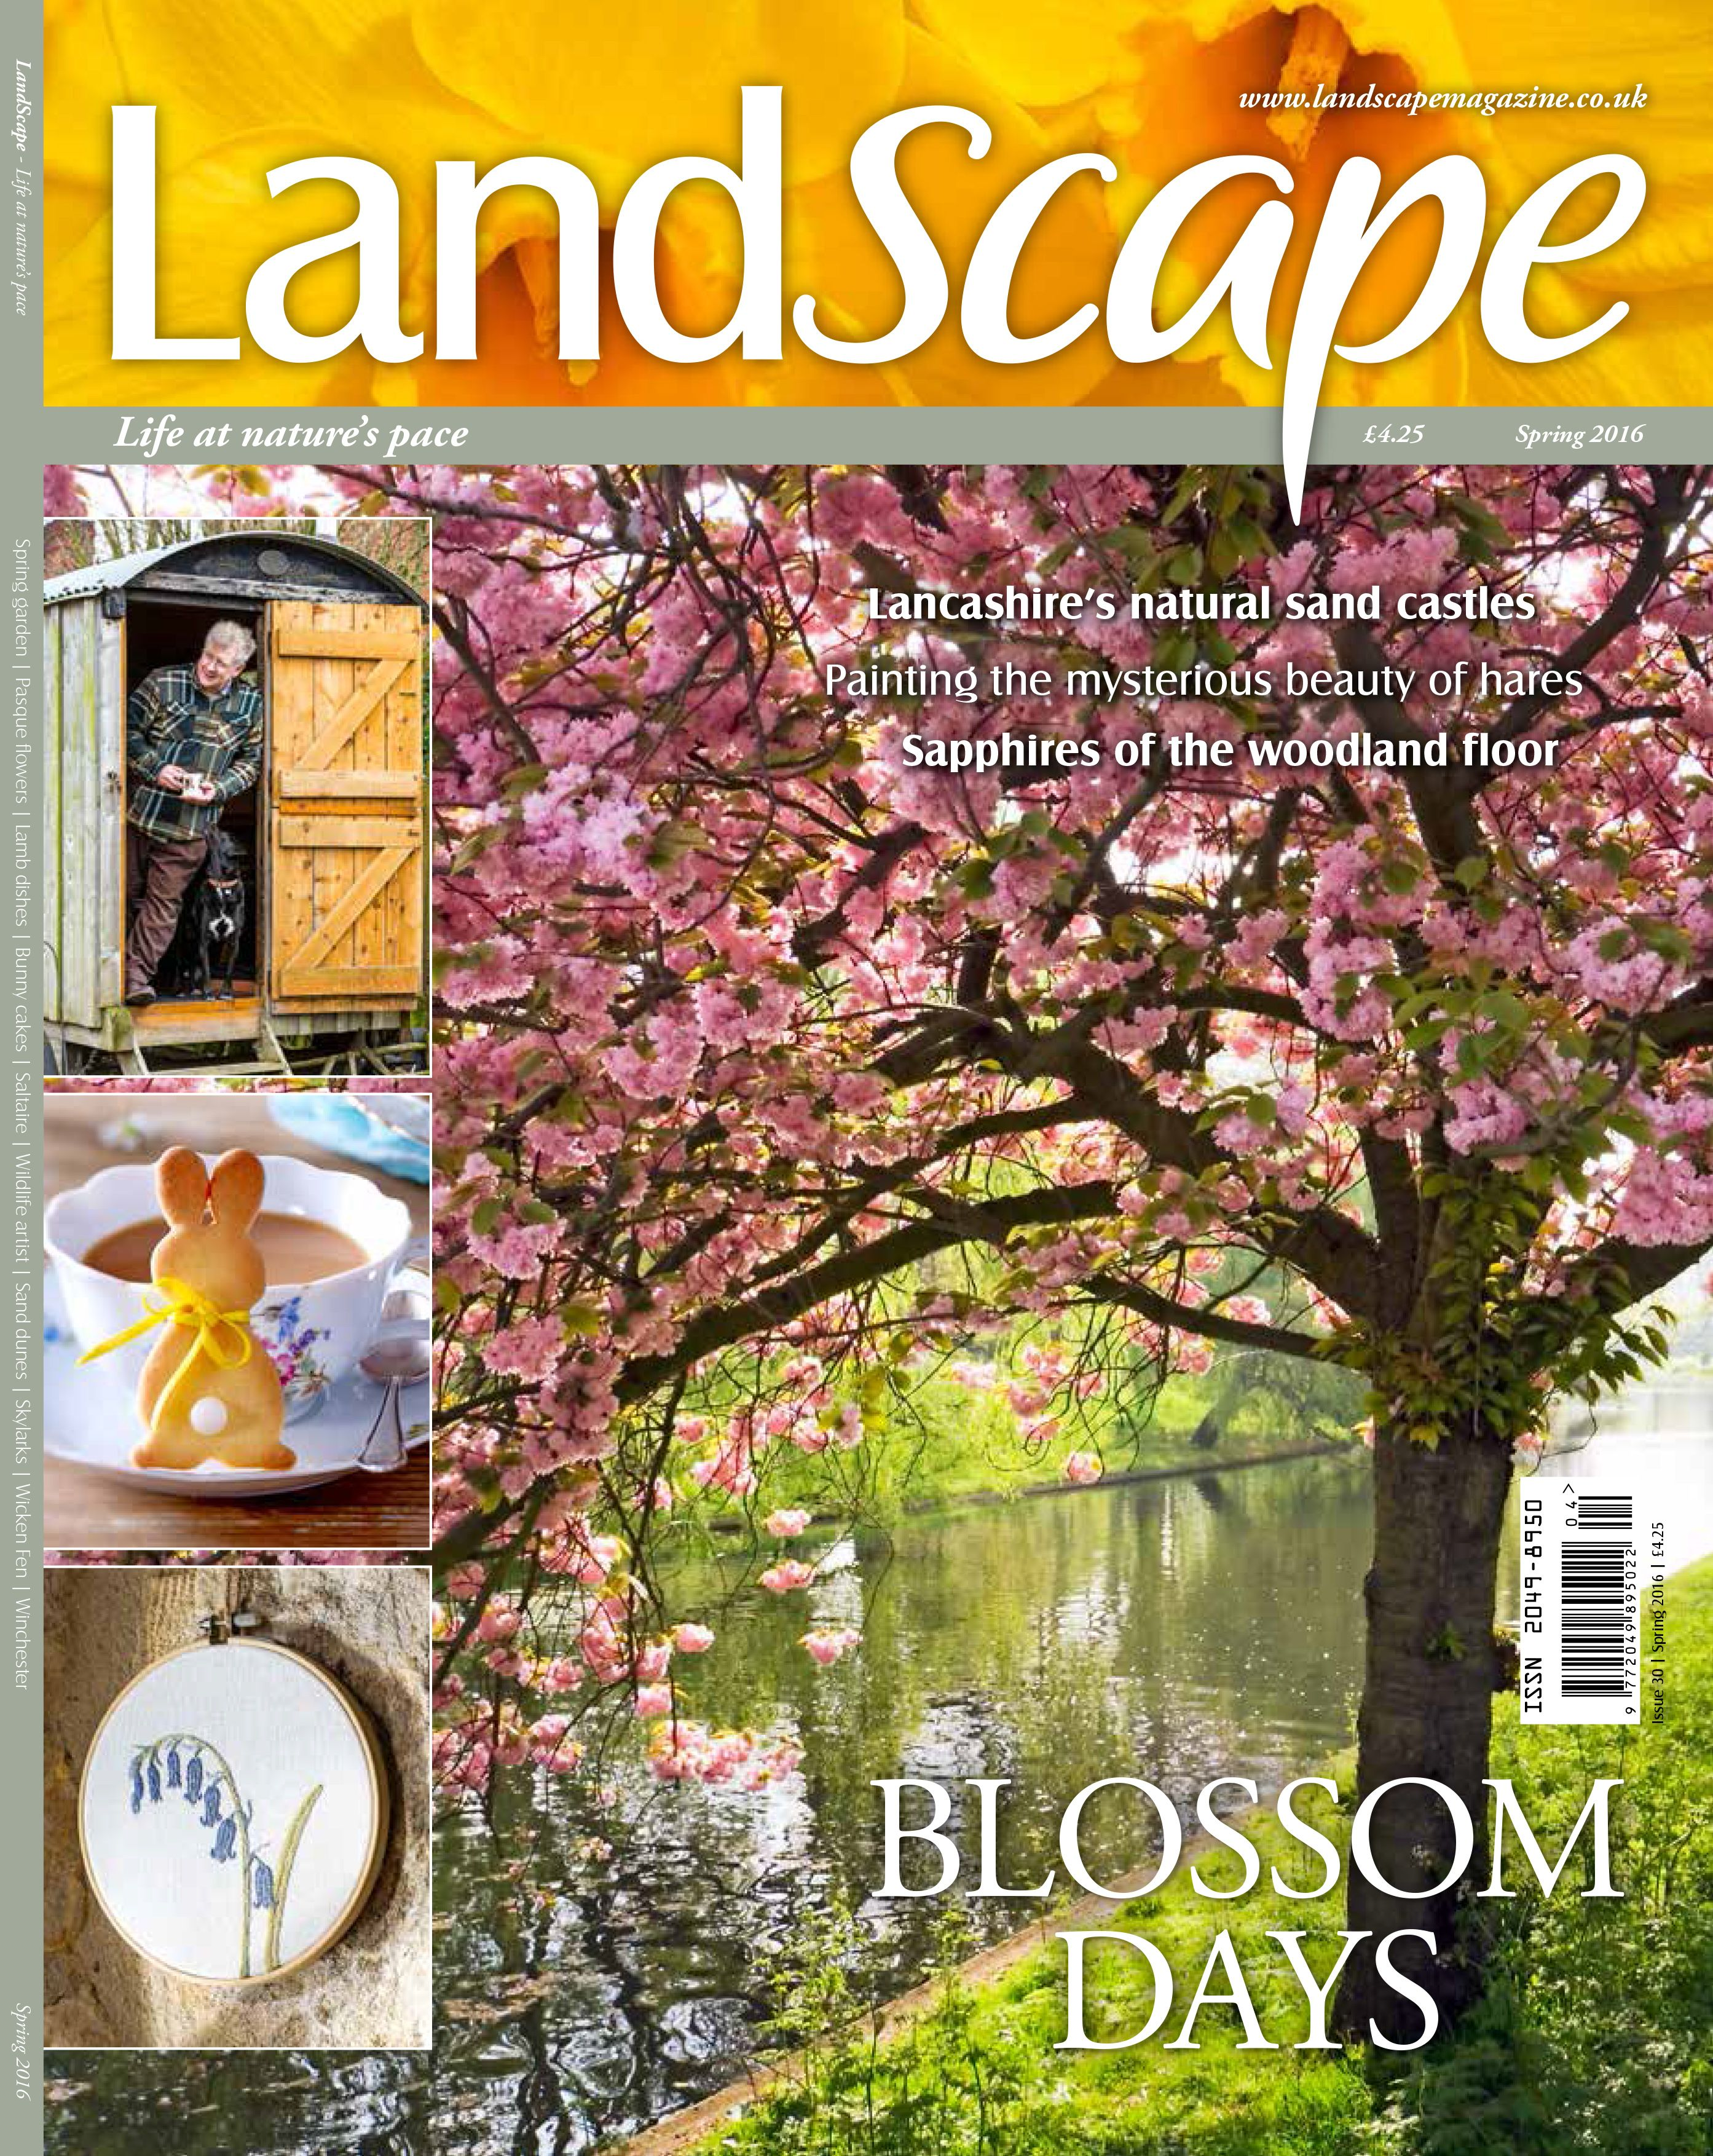 LandScape magazine brings you the very best of Britain.Its evocative content means you can bring every season to life in your home.GORGEOUS GardeningEnjoy the beauty and diversity of the Brit